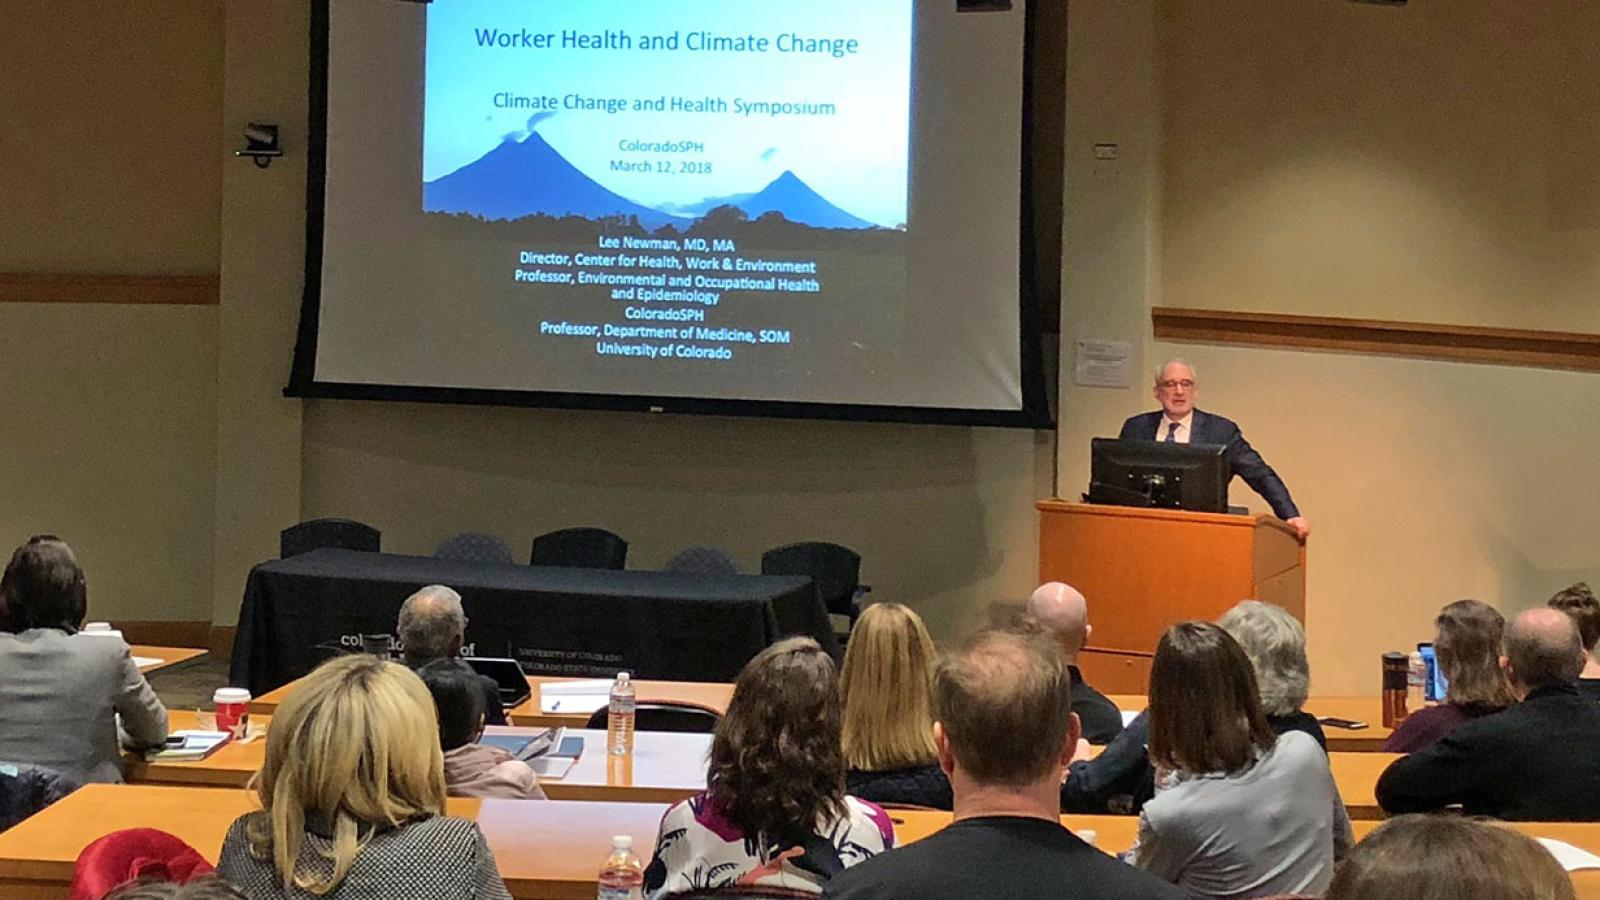 Climate Change & Health Symposium